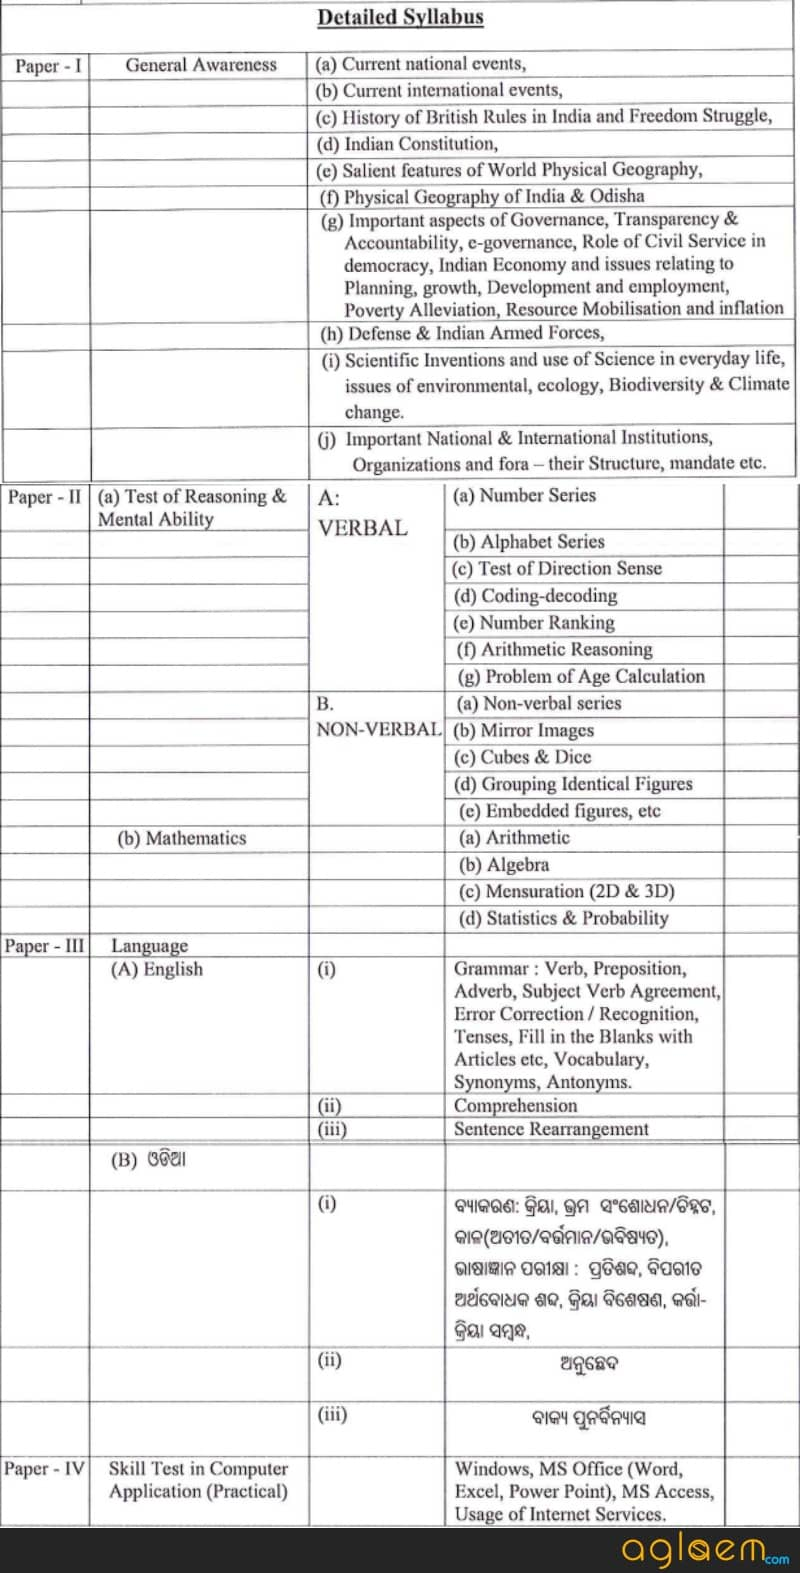 Syllabus of OPSC ASO Recruitmnet exam